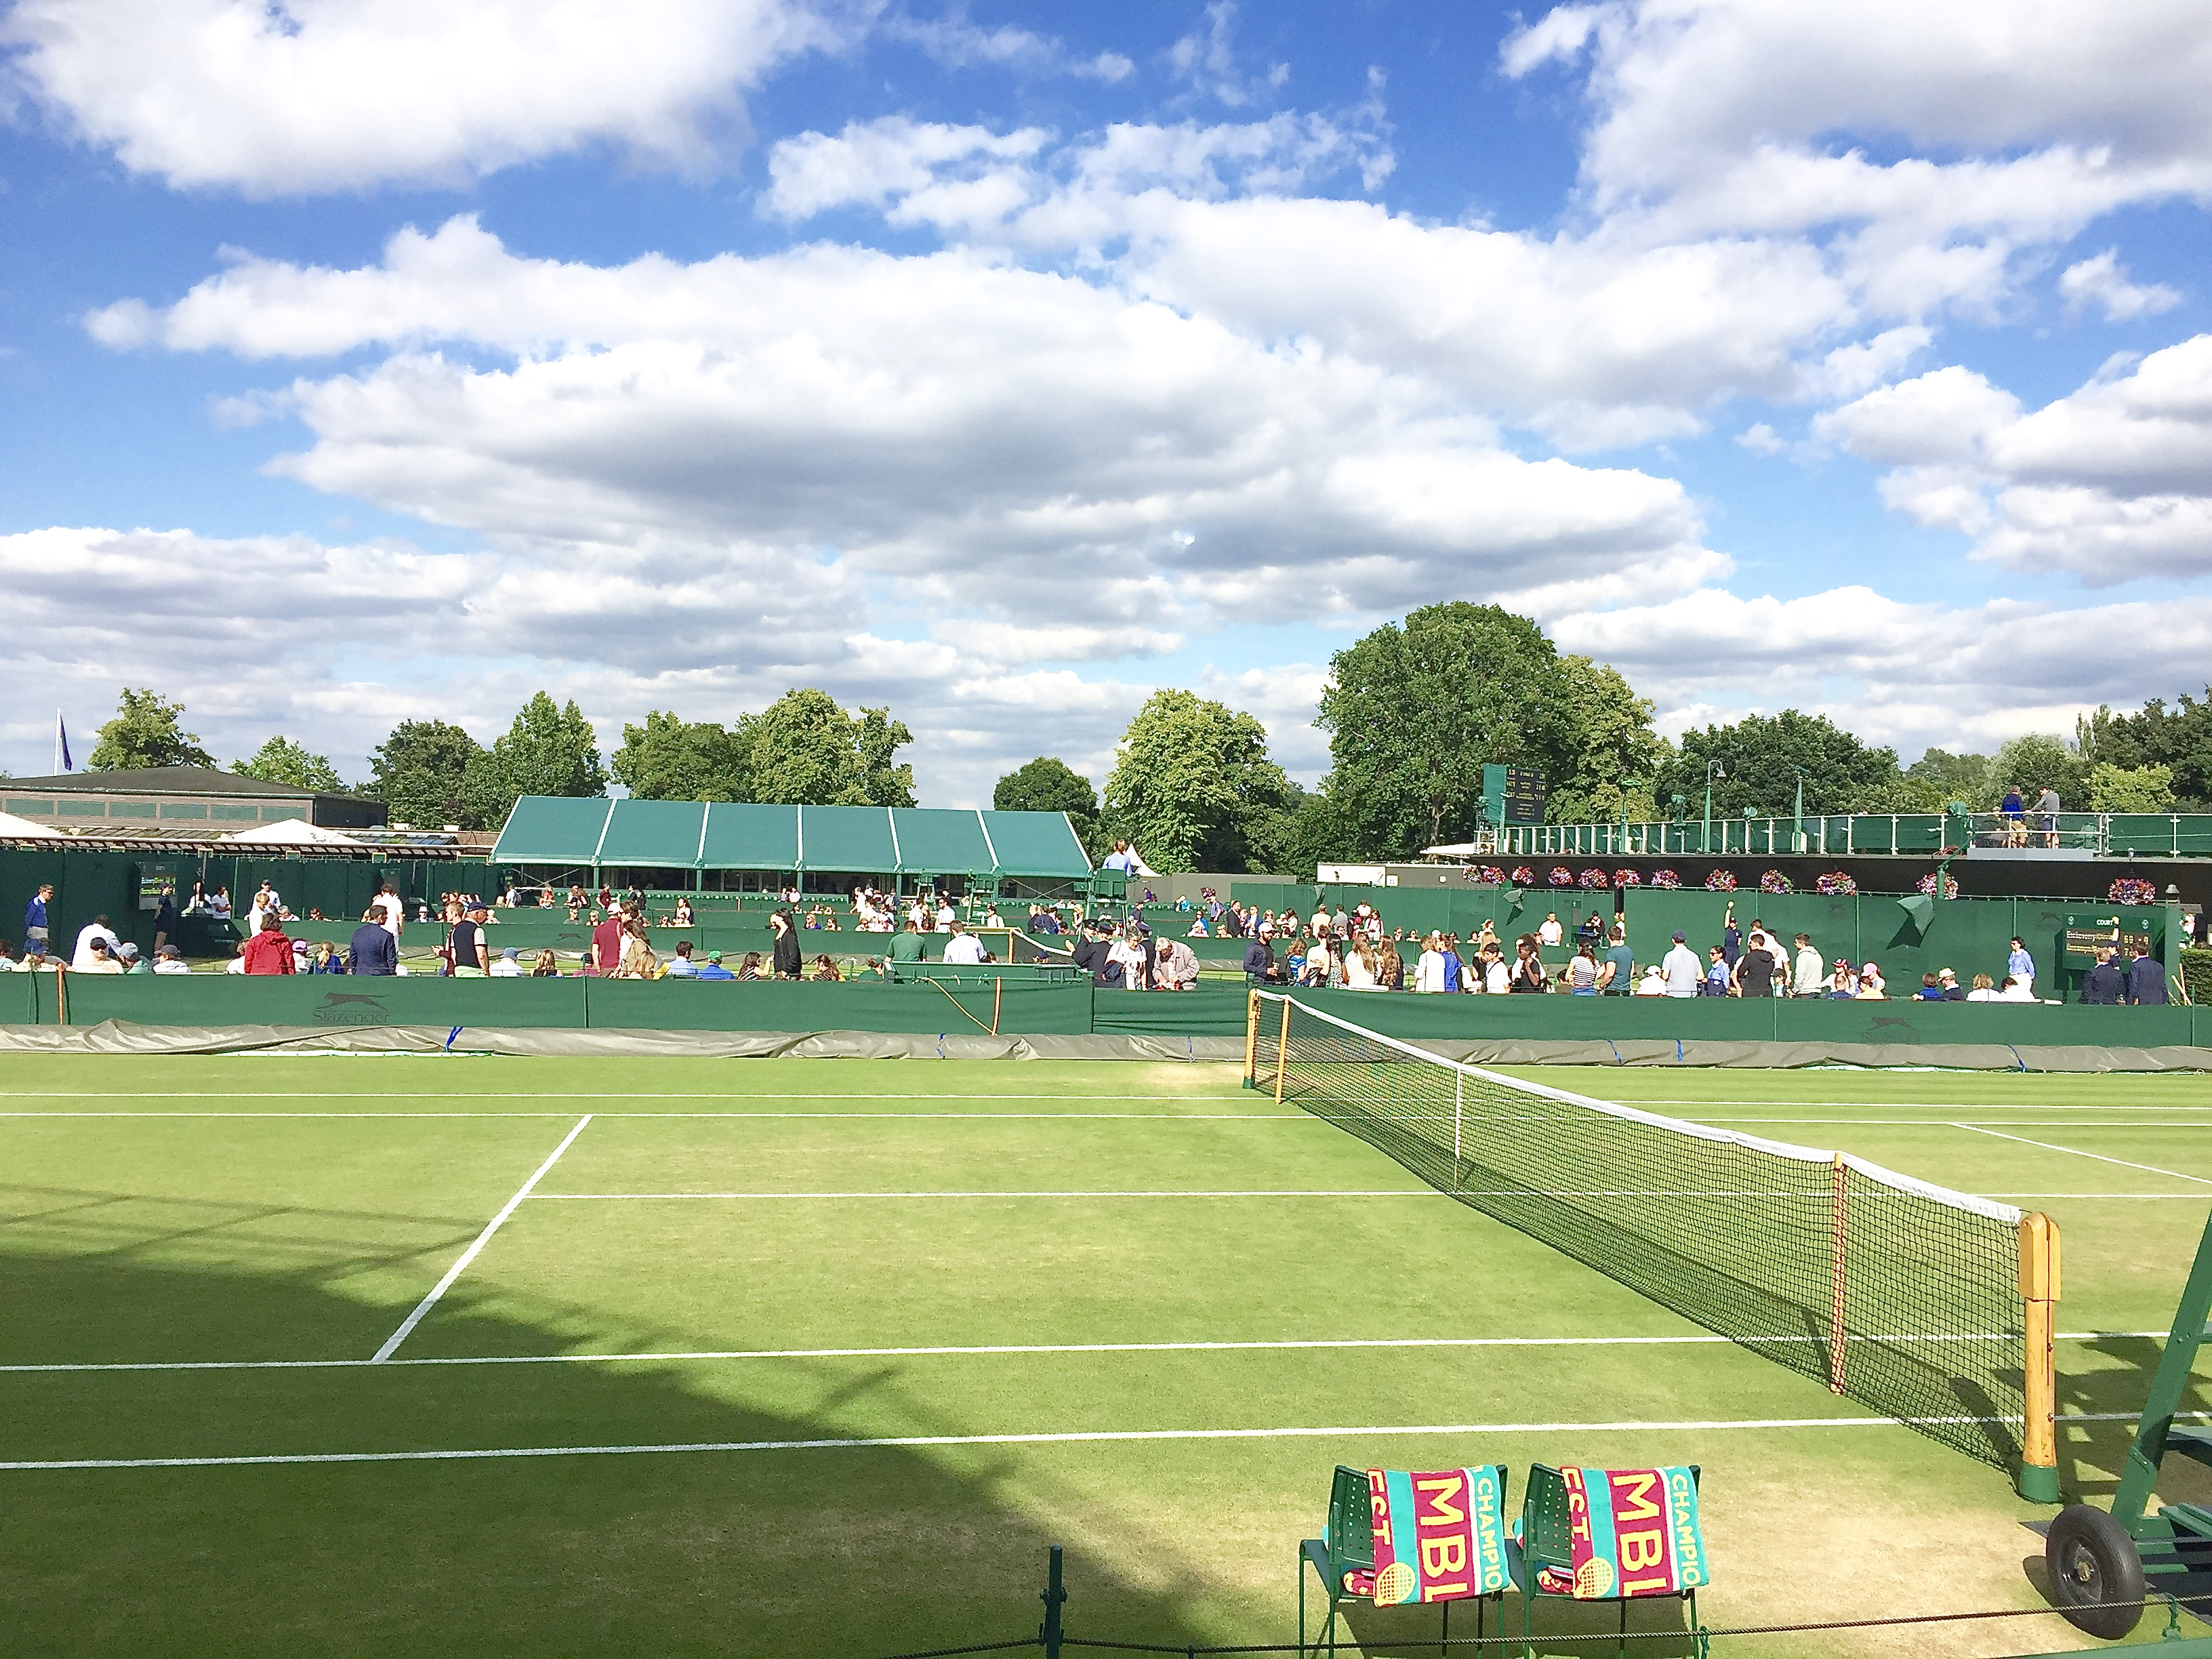 Lower courts at Wimbledon